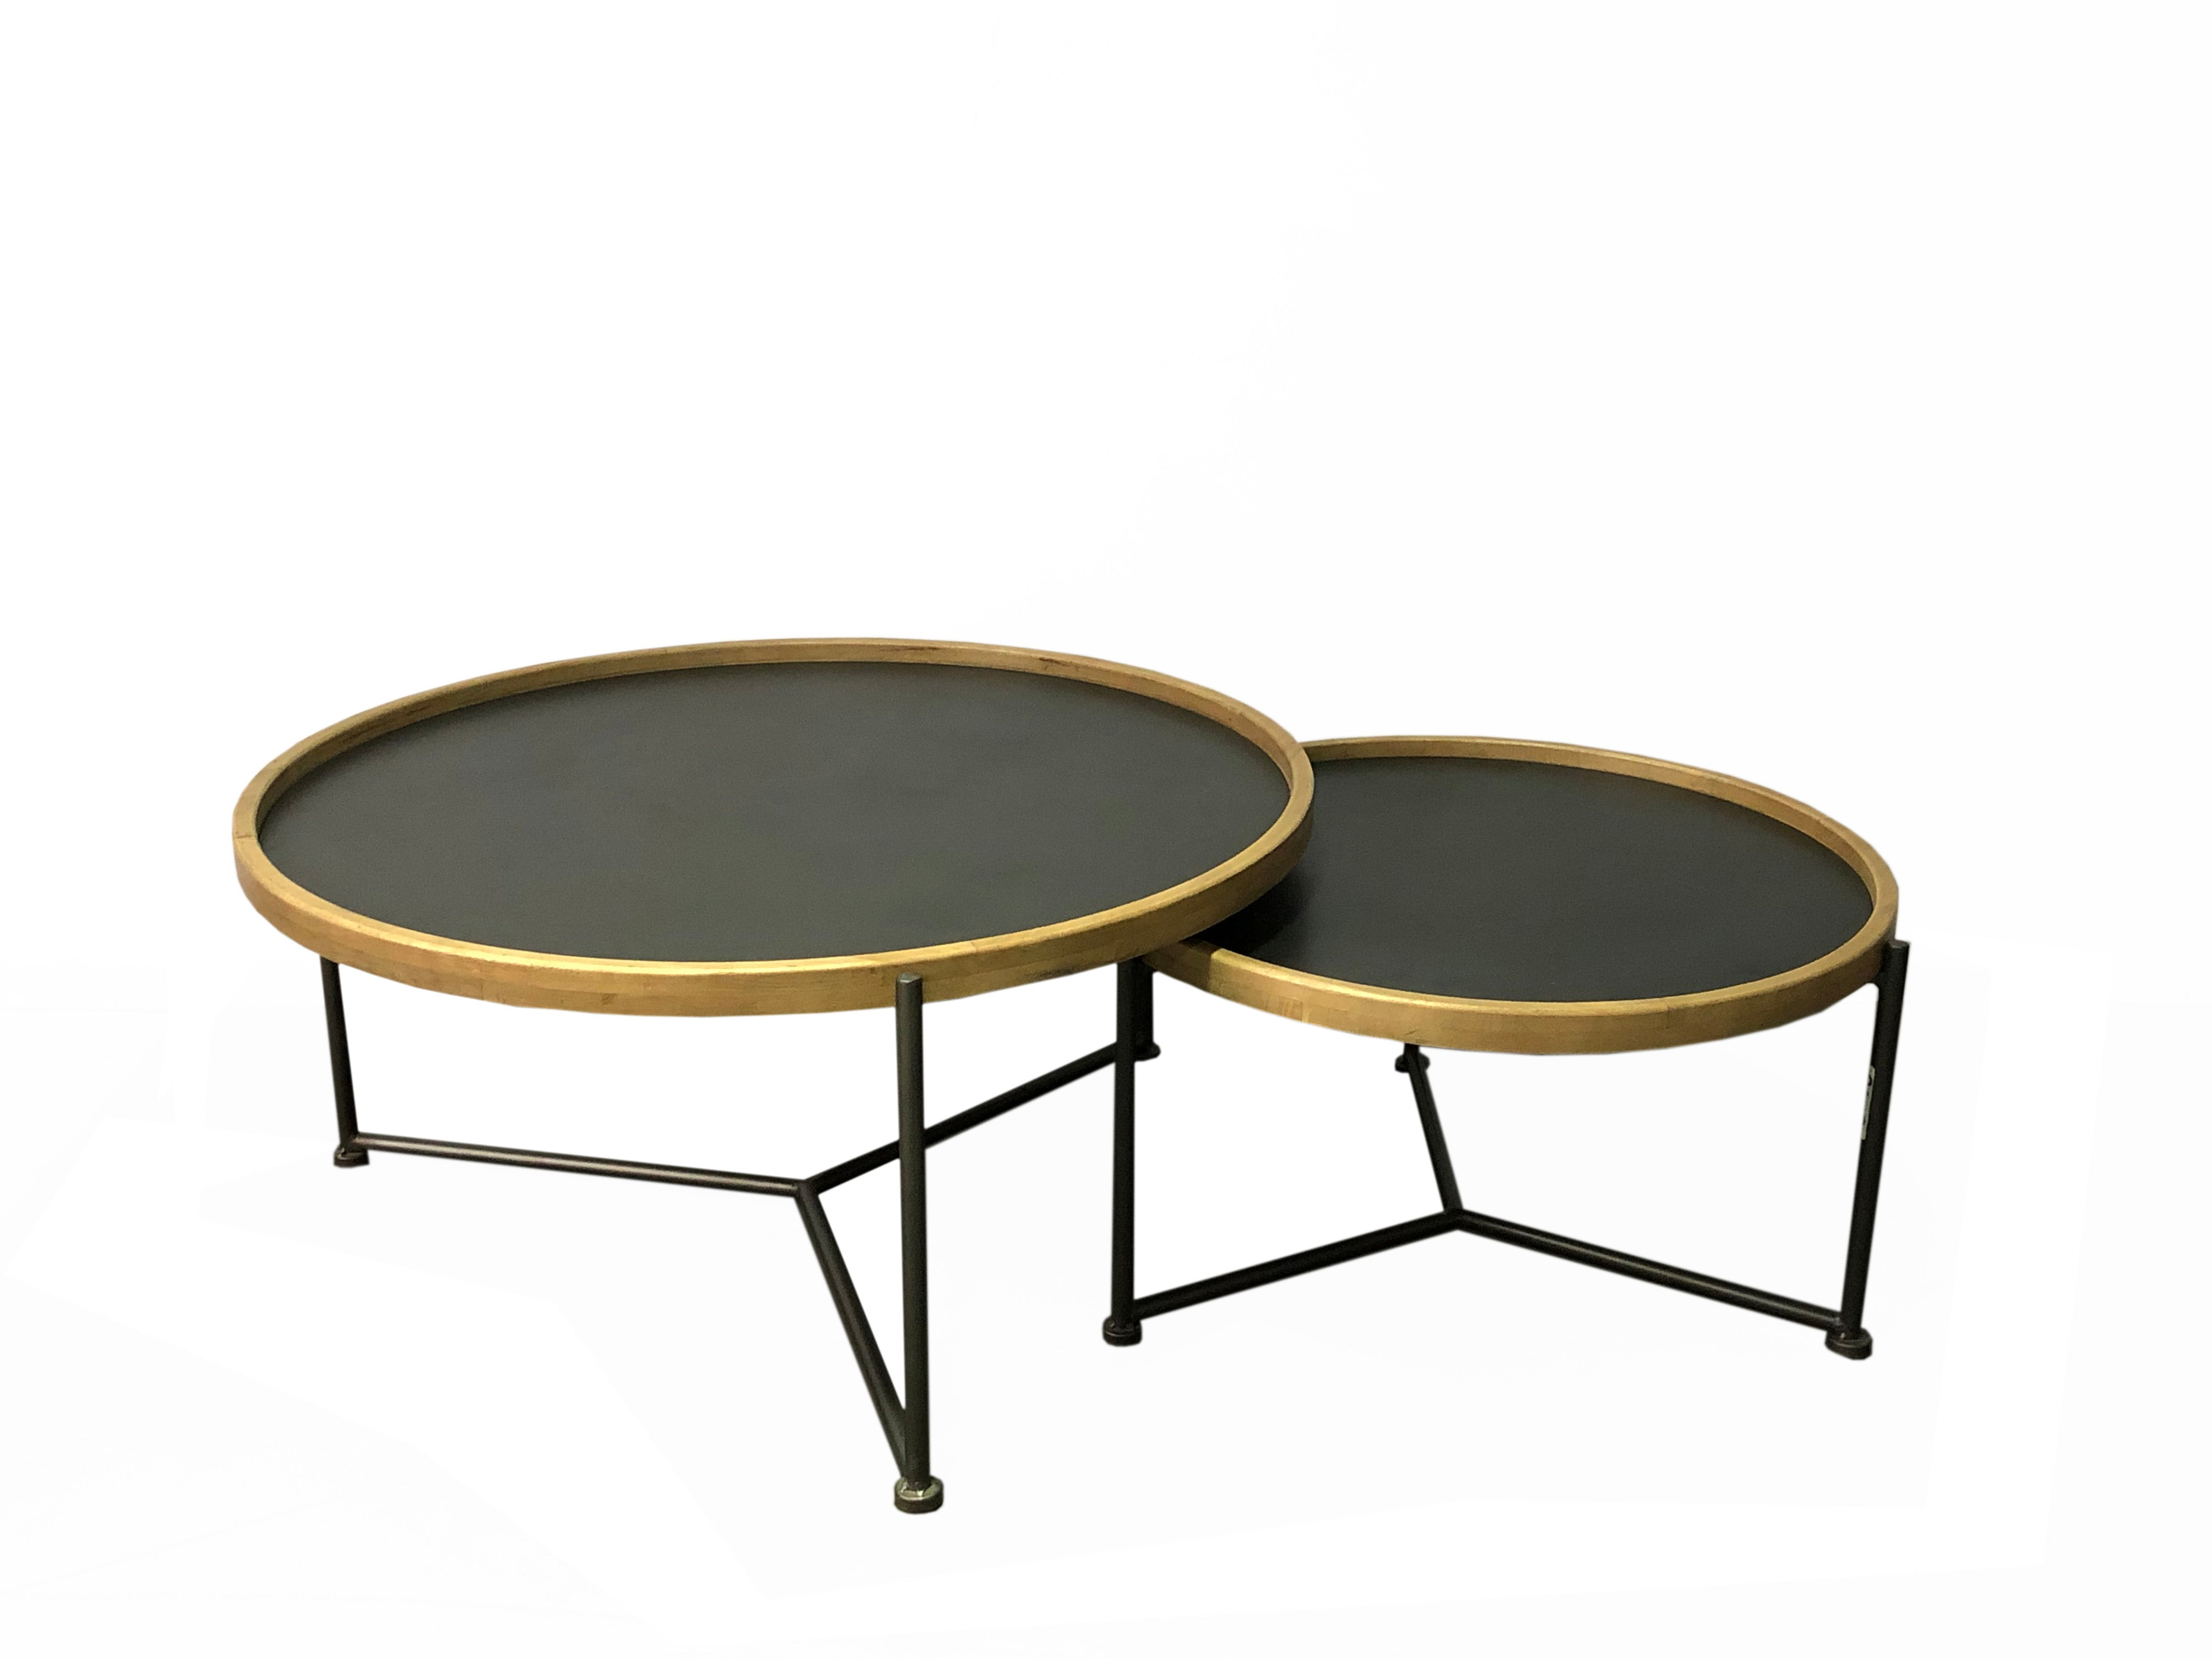 KALIA ROUND COFFEE TABLE SET 25X14X25IN / 33X16X33 IN